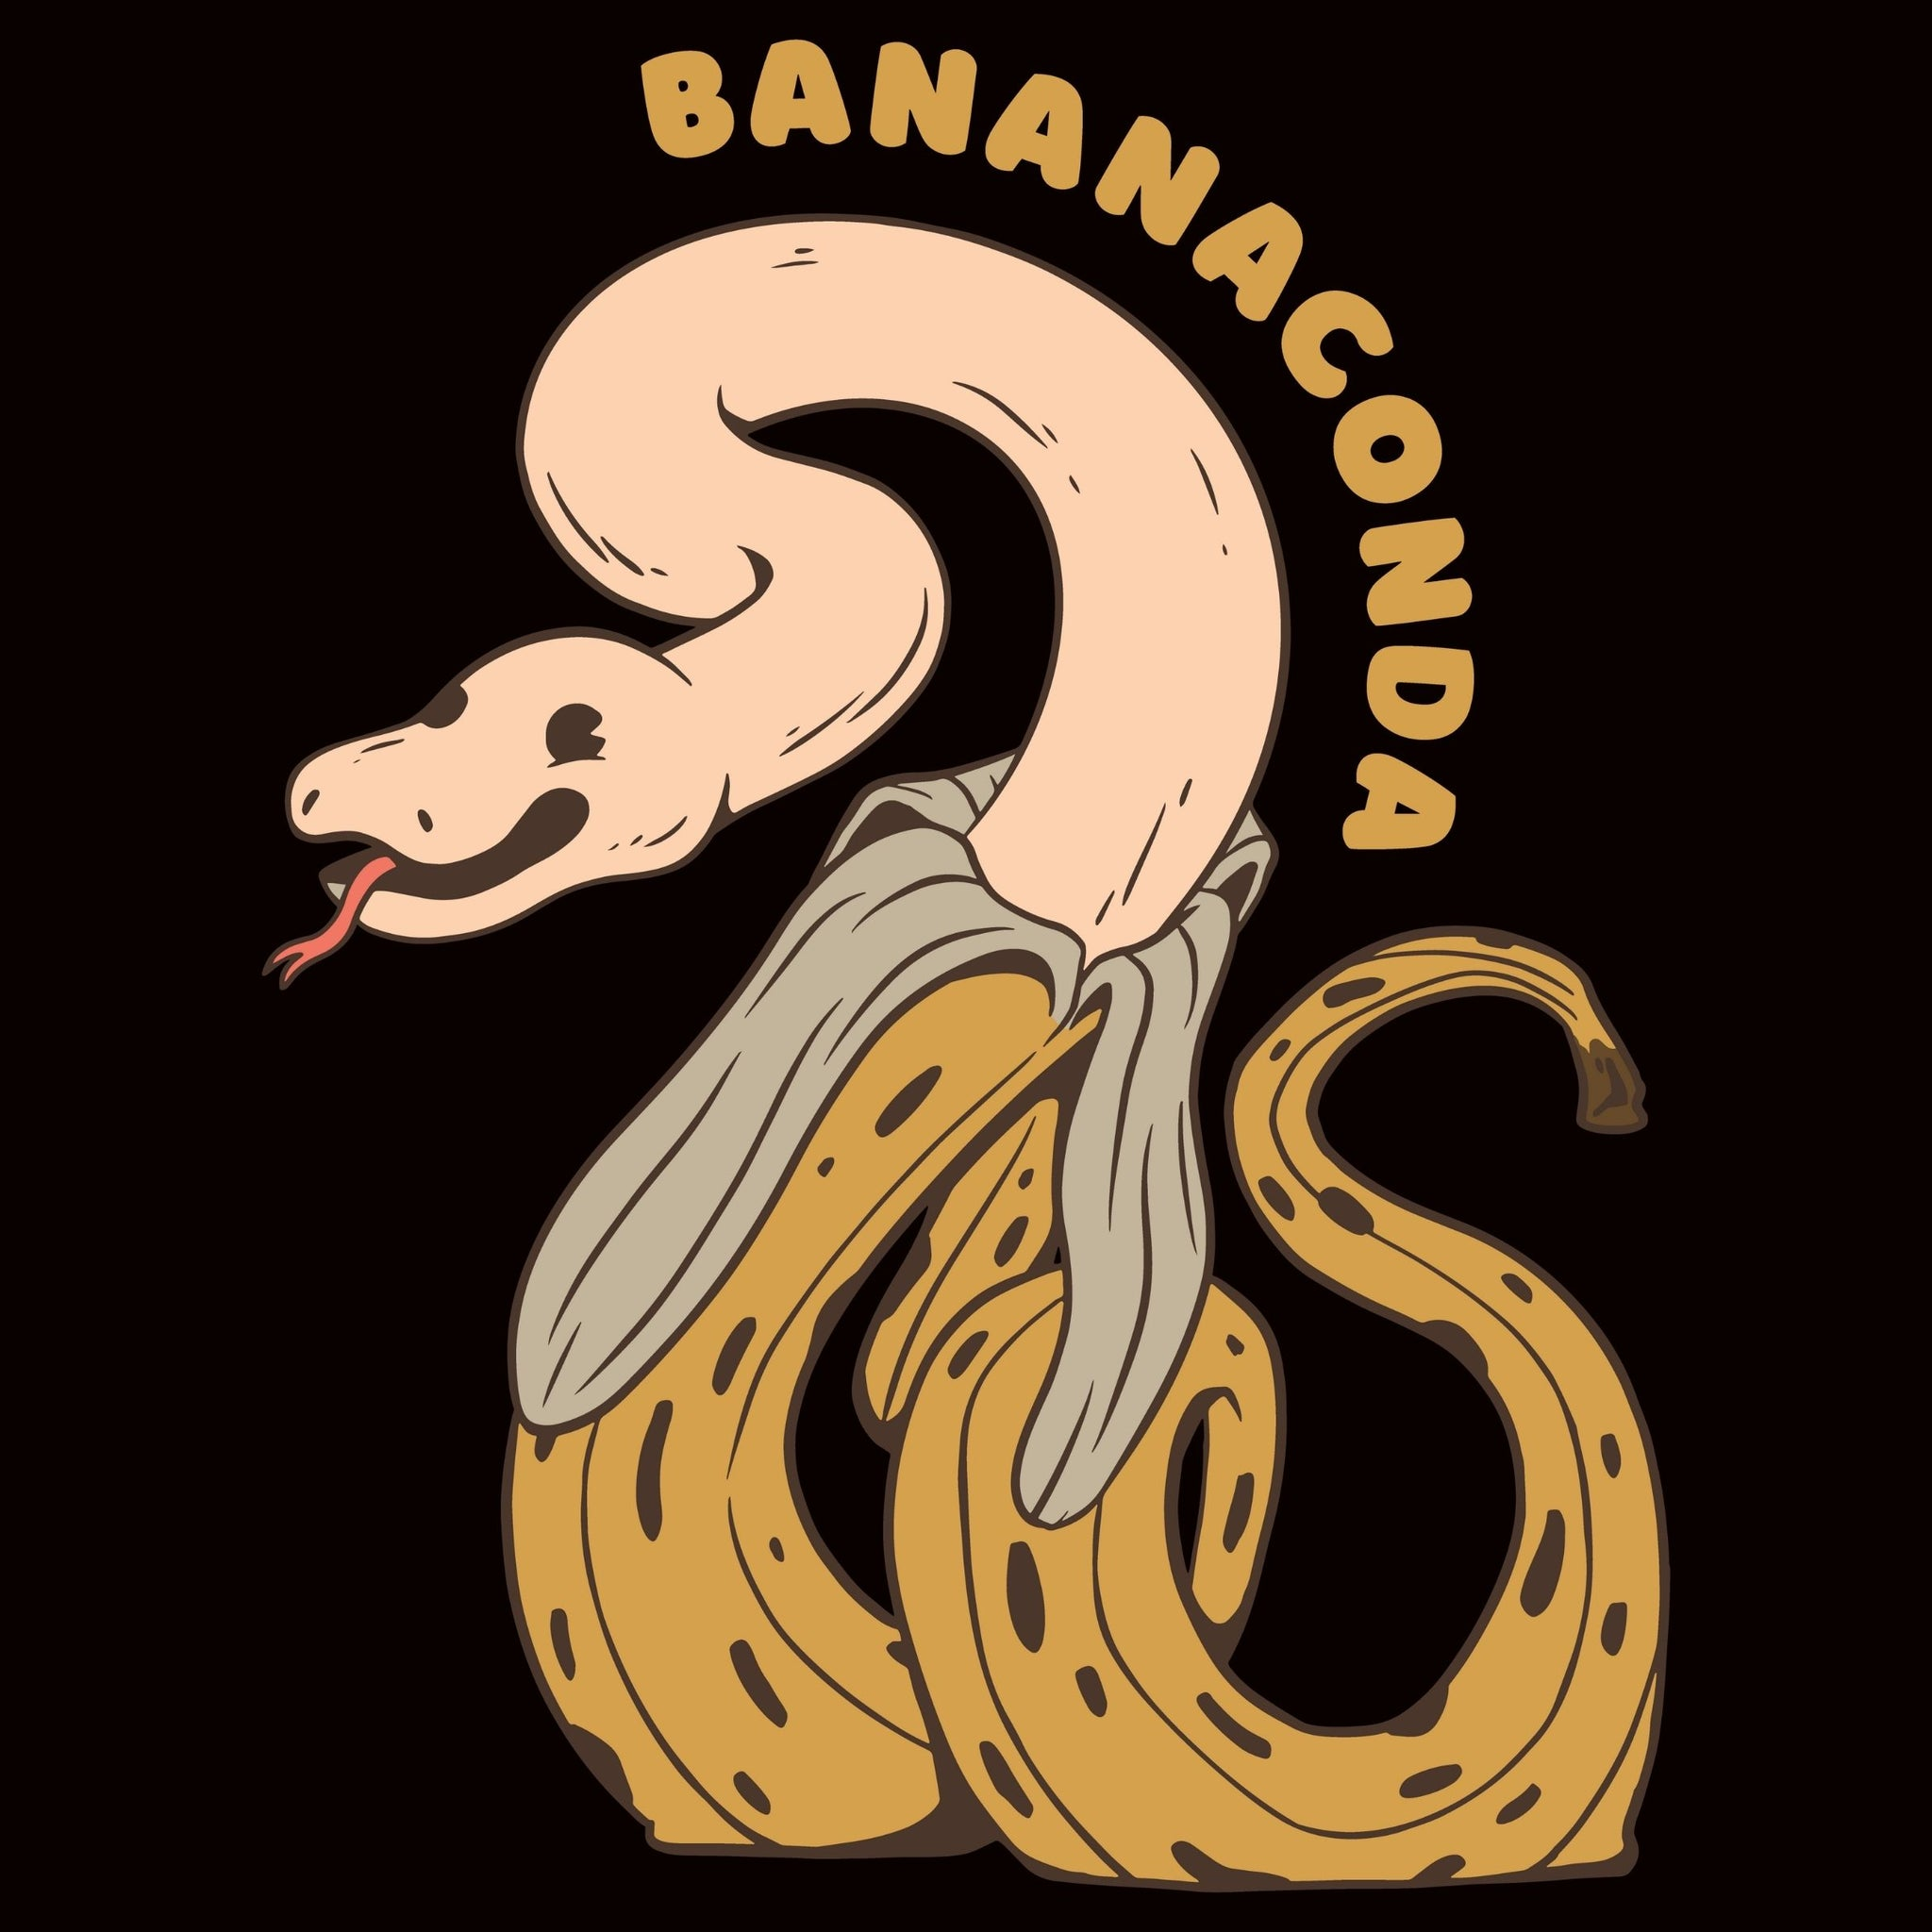 Bananaconda - Bastard Graphics